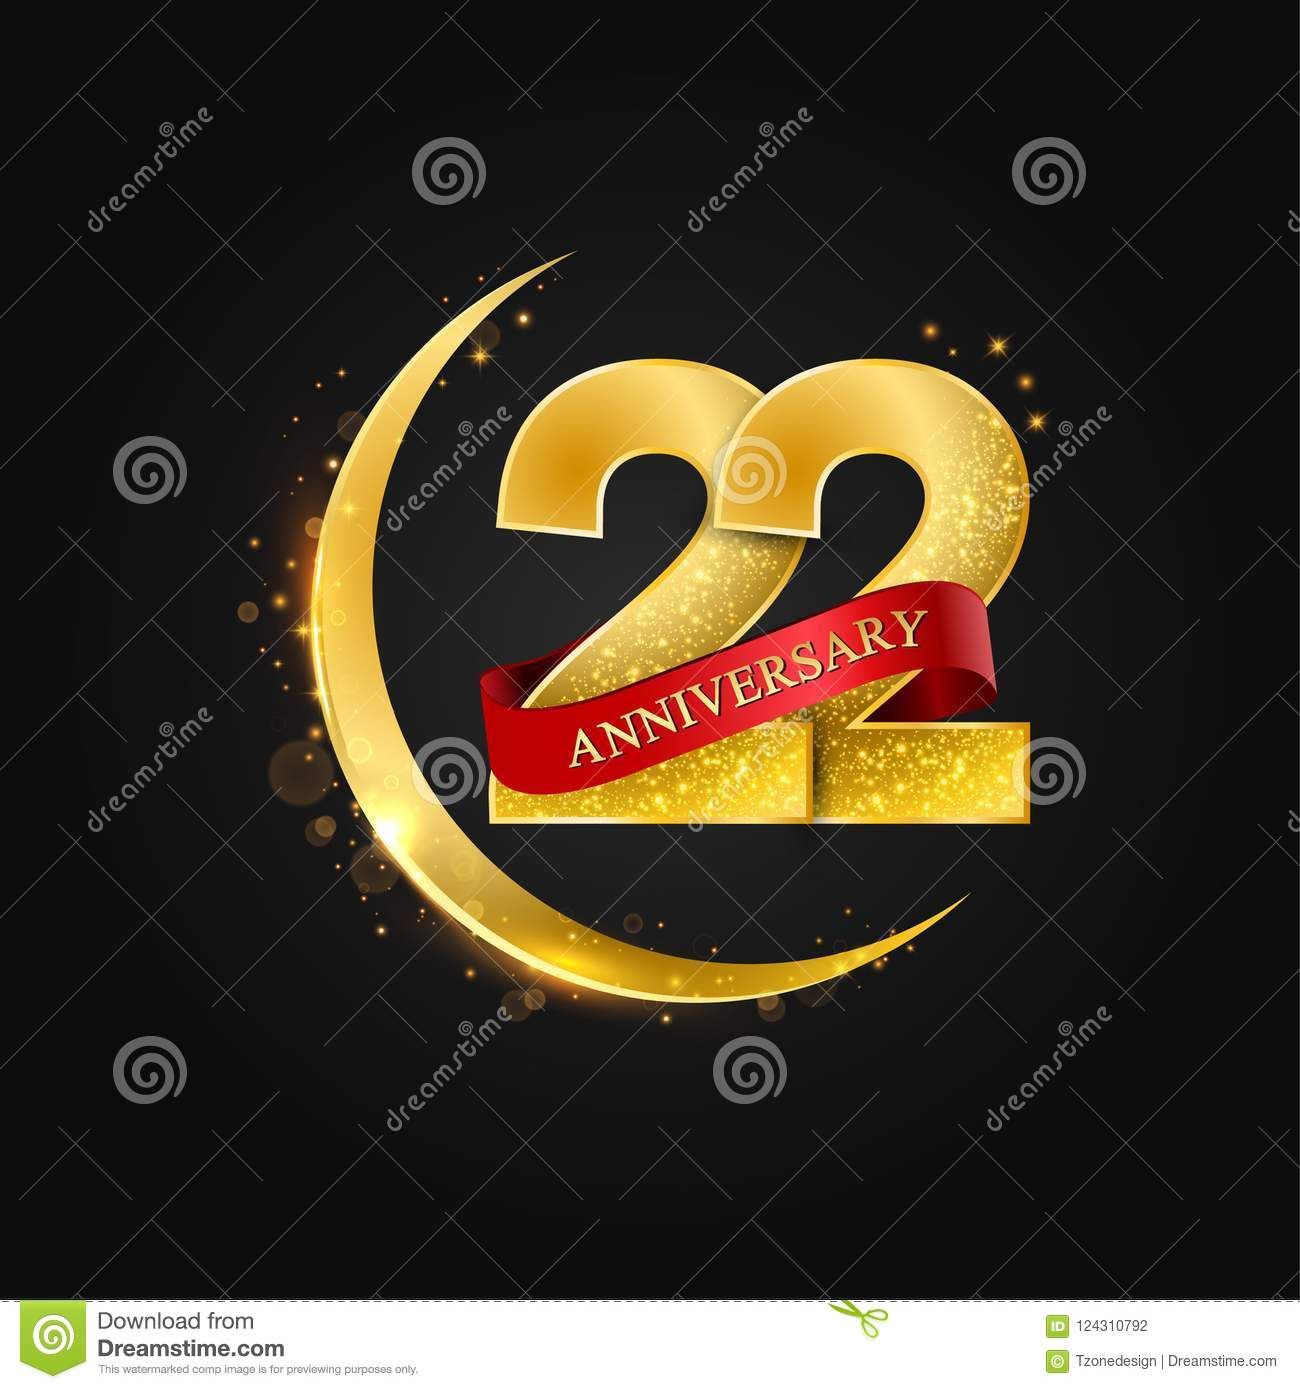 22 years anniversary pattern with arabic golden gold half moon and